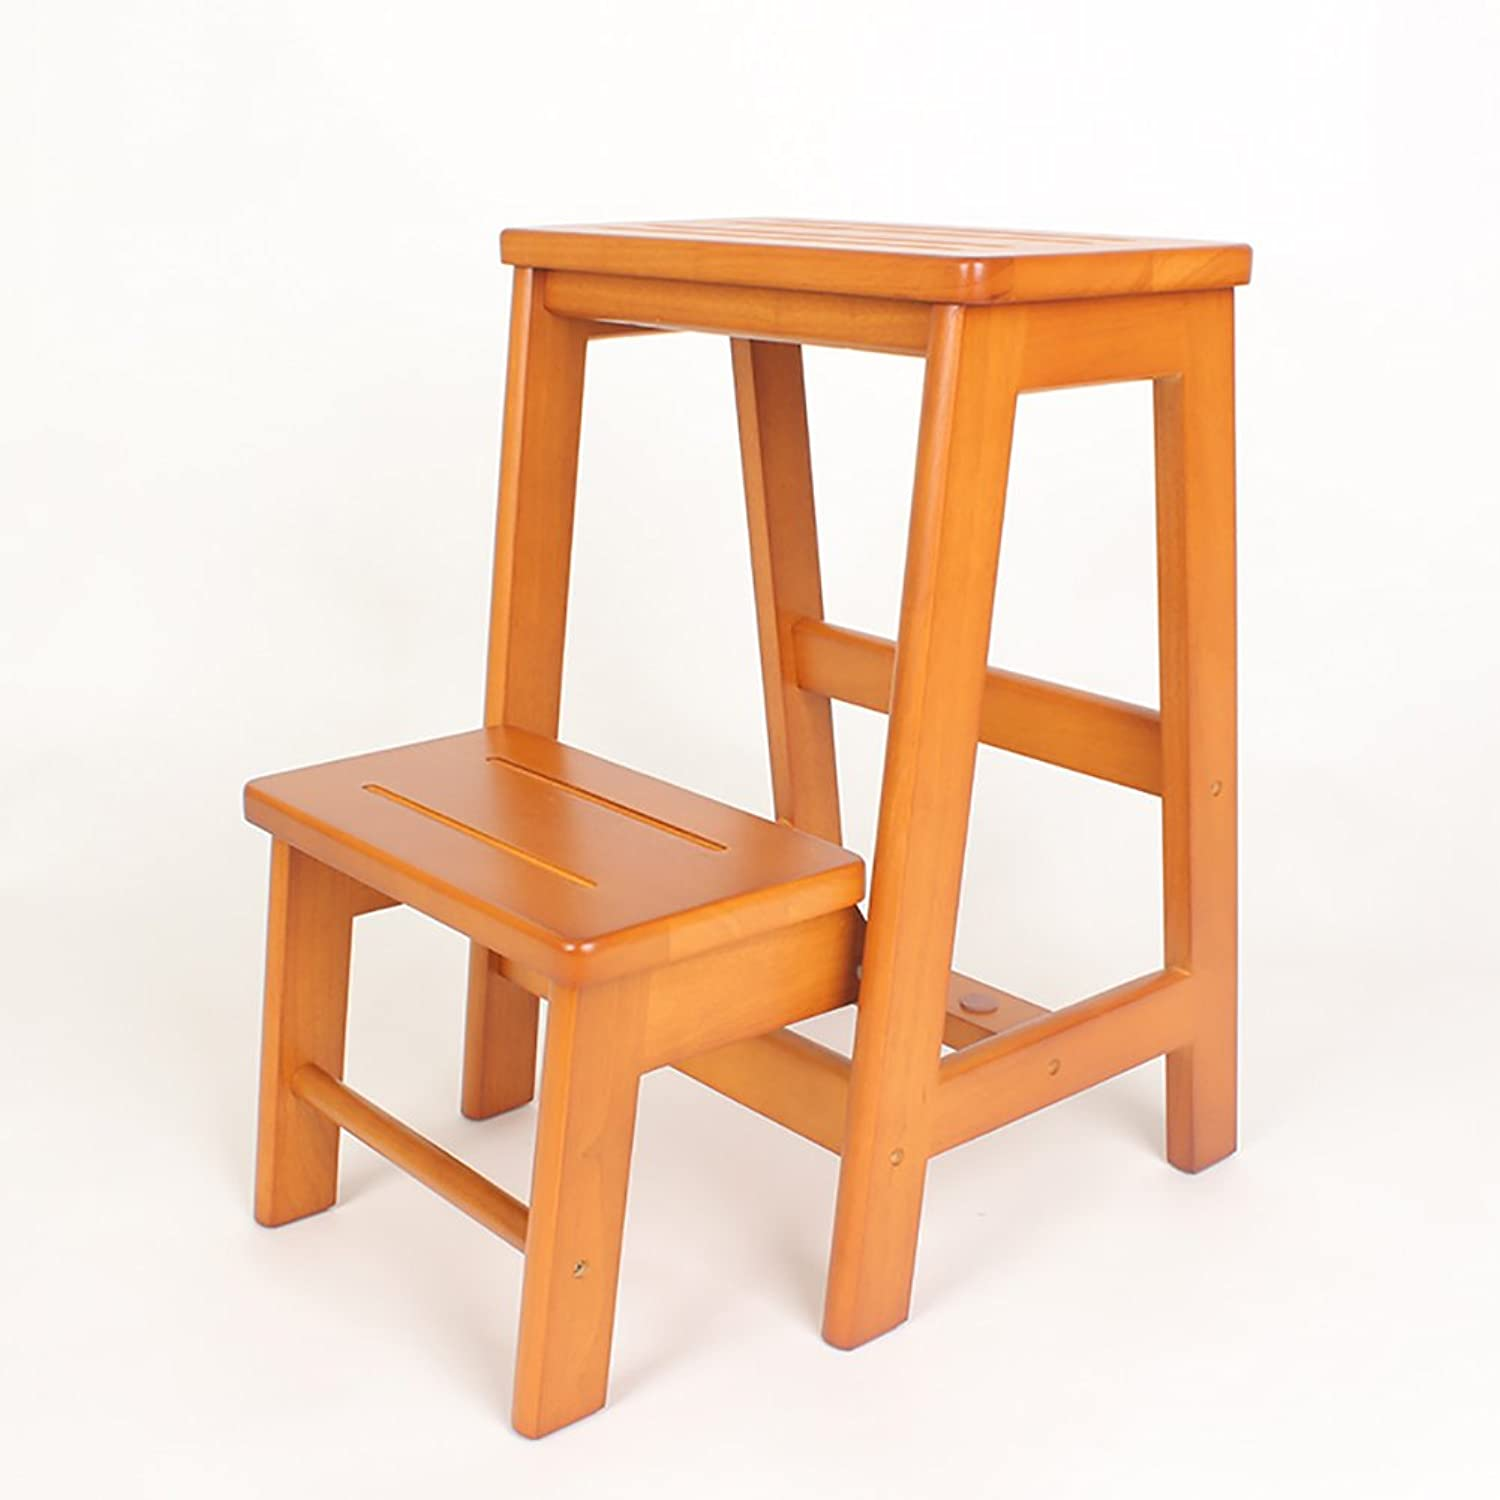 Ladders stools WSSF- Solid Wood 2 Step Stools Dual-use Folding Stairs Household Kitchen Stool Garden Tool DIY Safety Stepladder,3847.554cm (color   Honey color)